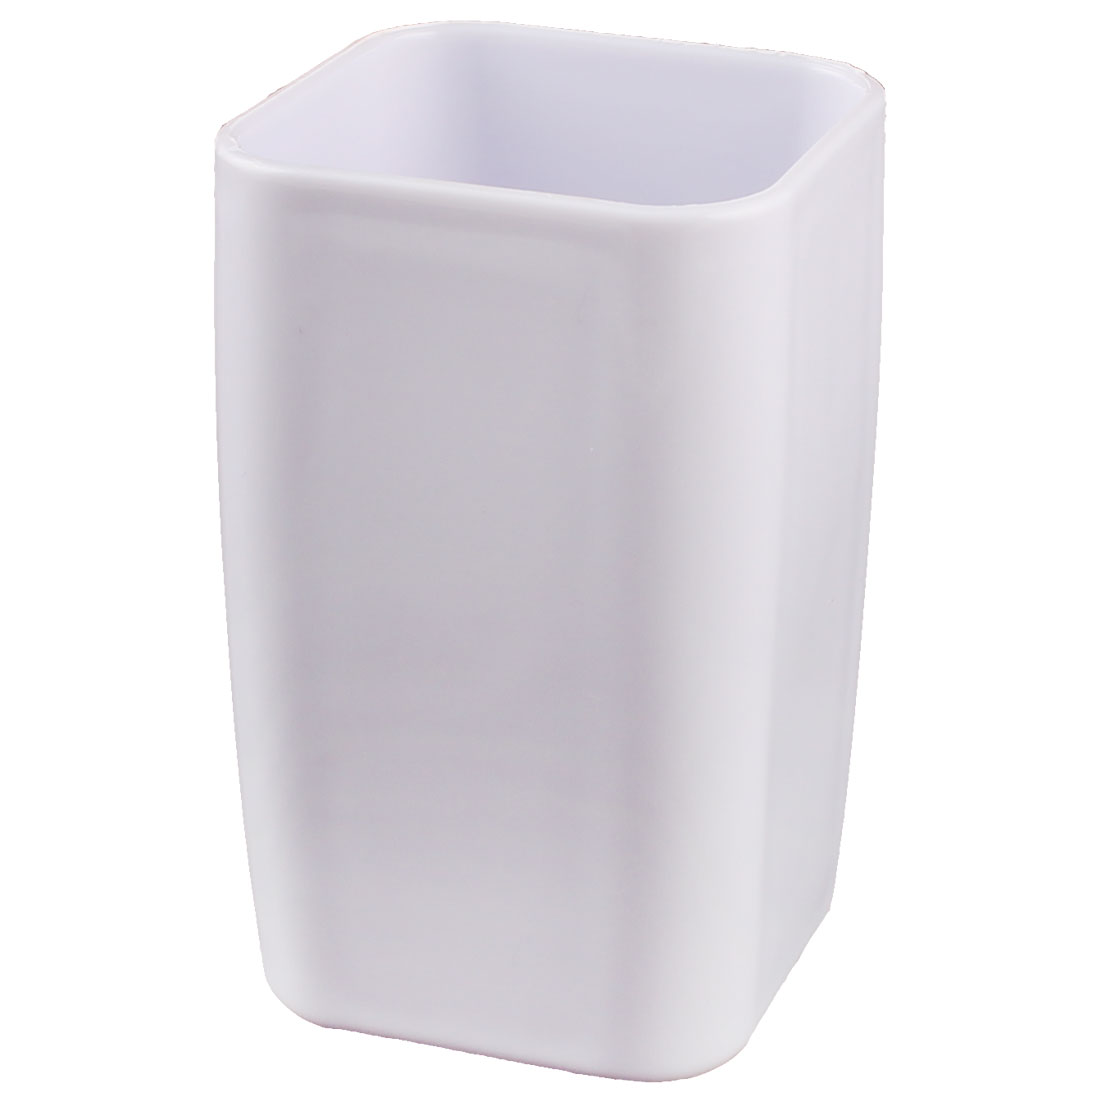 Home Bathroom Plastic Cuboid Shaped Toothbrush Toothpaste Gargle Cup Holder White 290ml